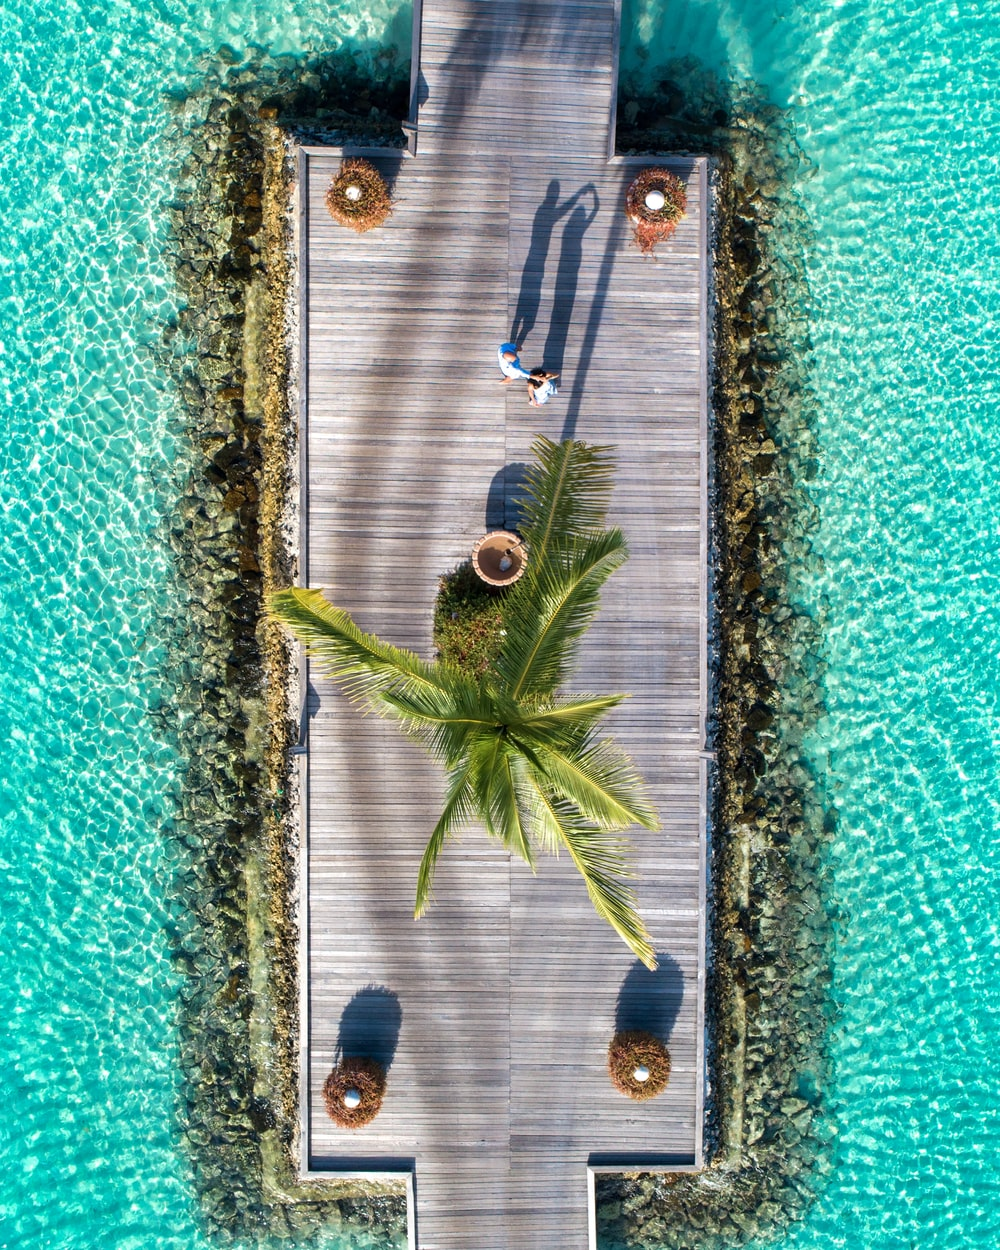 aerial view of 2 people in beach during daytime